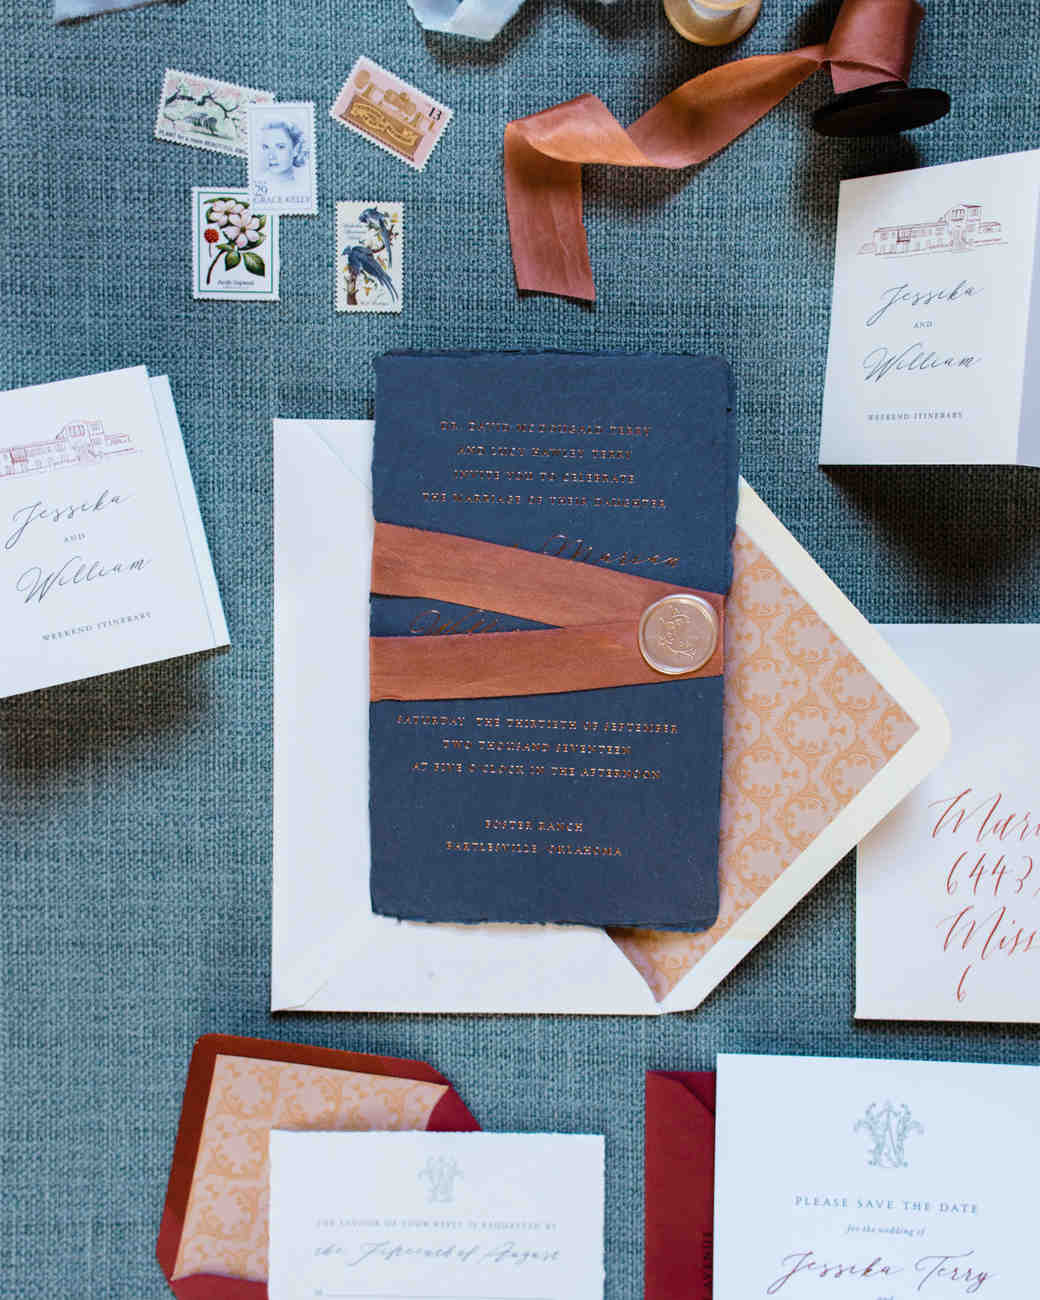 jessika william wedding invitations